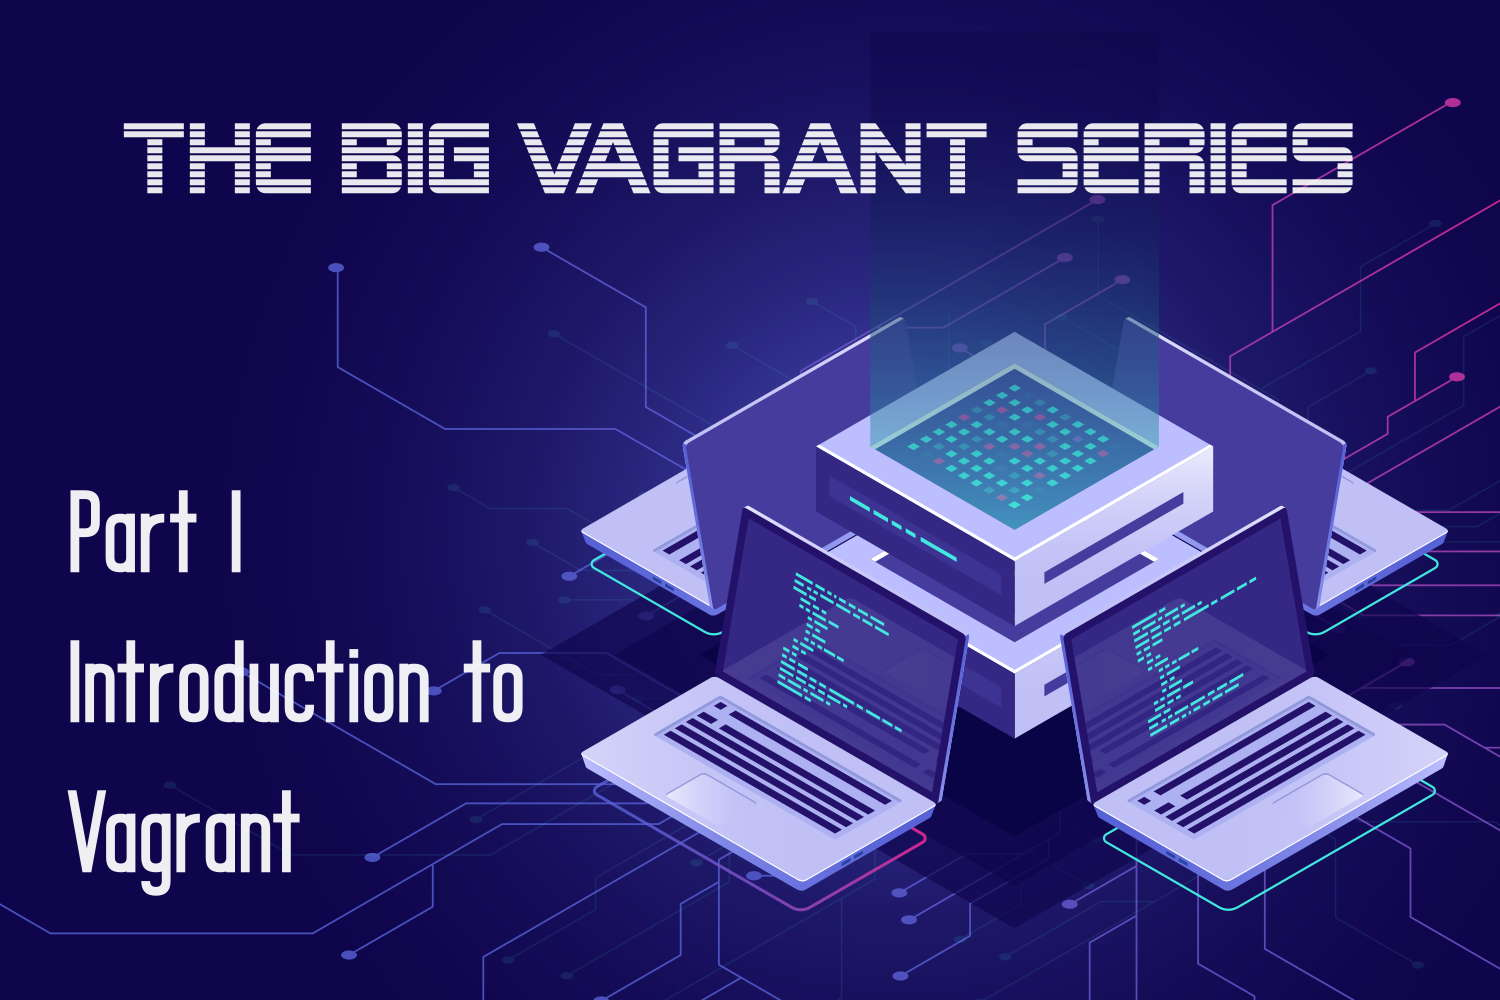 Introduction to Vagrant